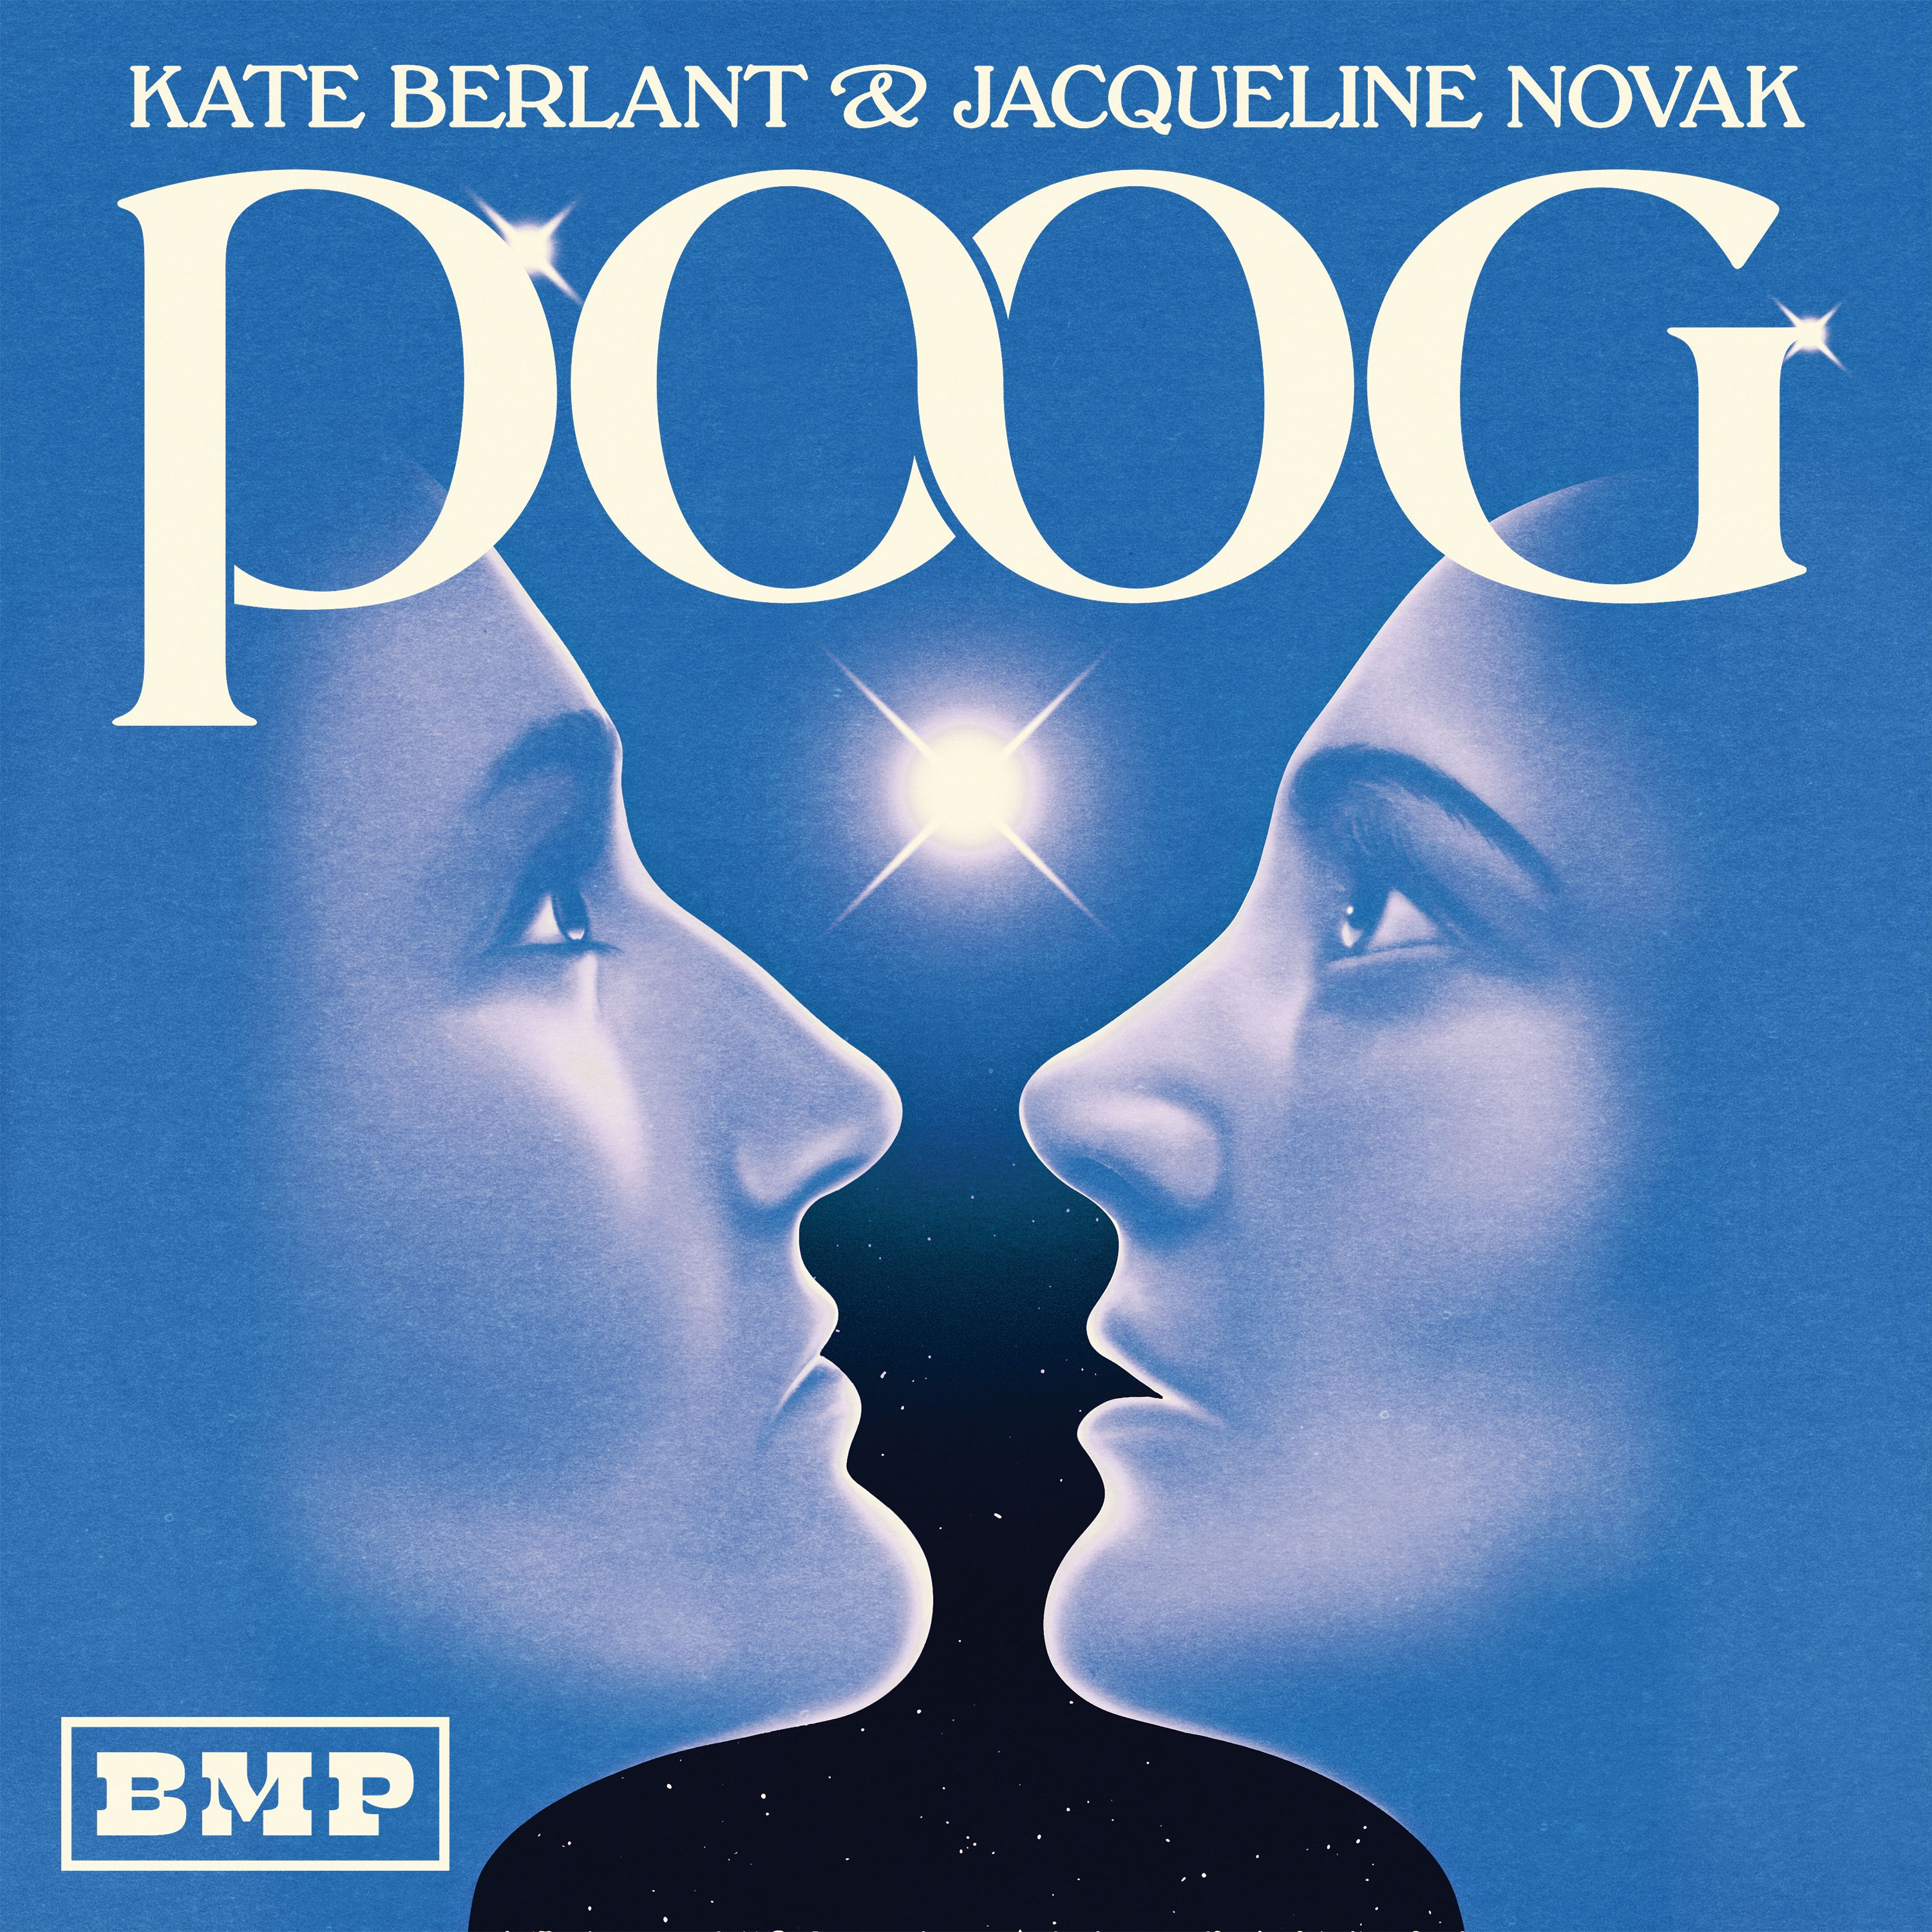 Introducing: 'POOG with Kate Berlant and Jacqueline Novak'